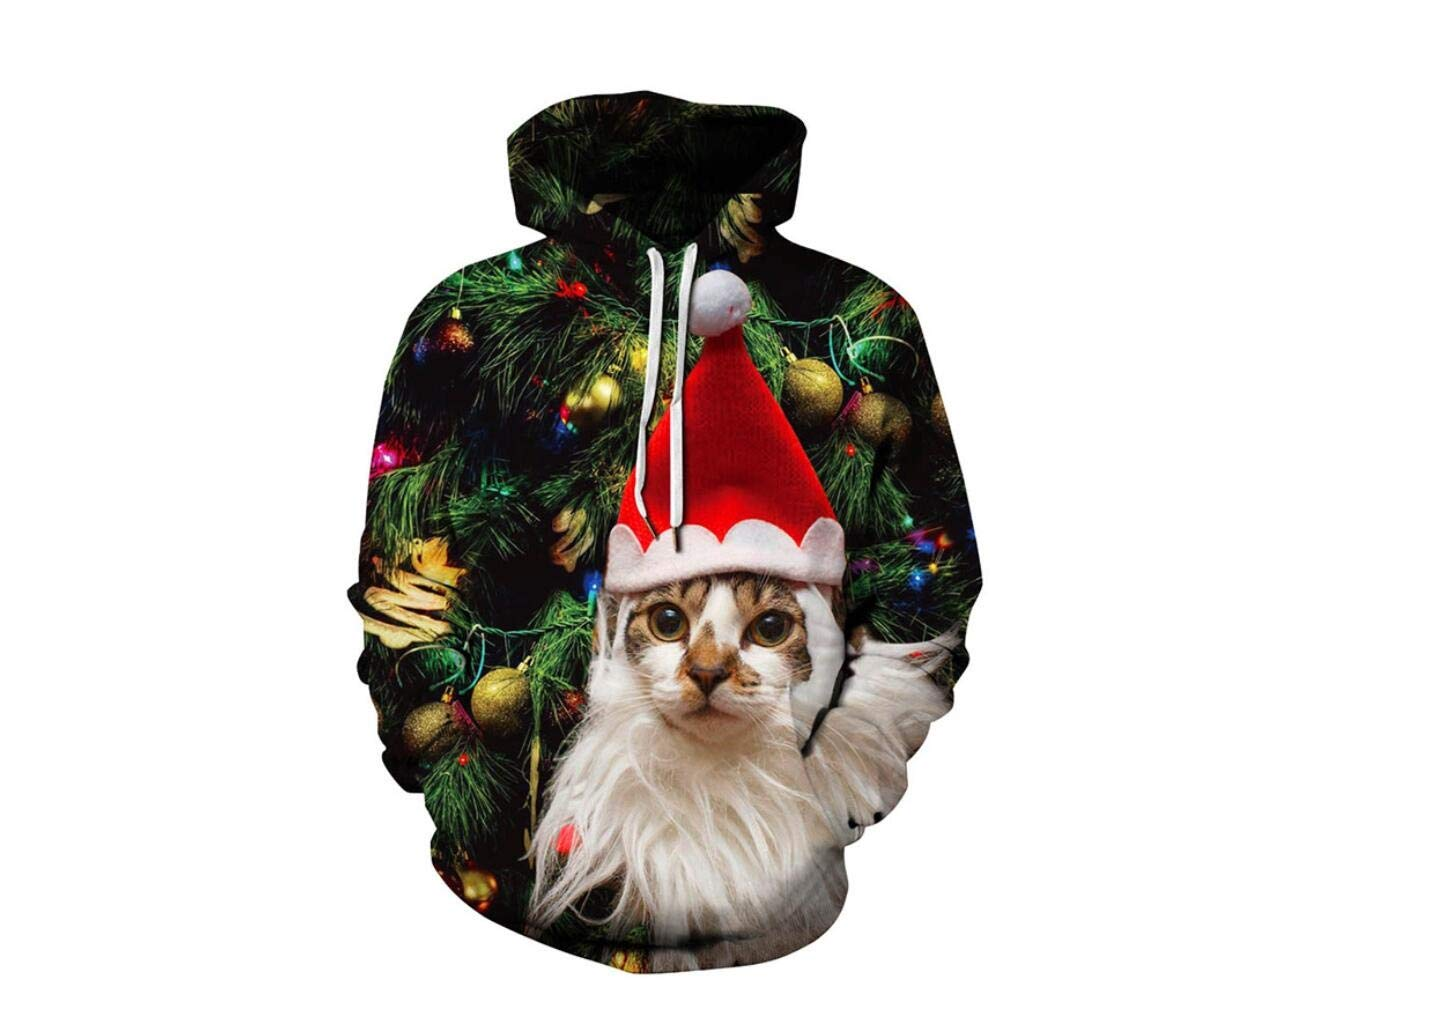 a82bcafb53cfb XeibD Christmas Cat Pullovers Autumn Winter Drawstring Hoodie Print Tops  Couple Wear Outwear Sweater Sweatshirt -XXL XXXL  Amazon.co.uk  Sports    Outdoors